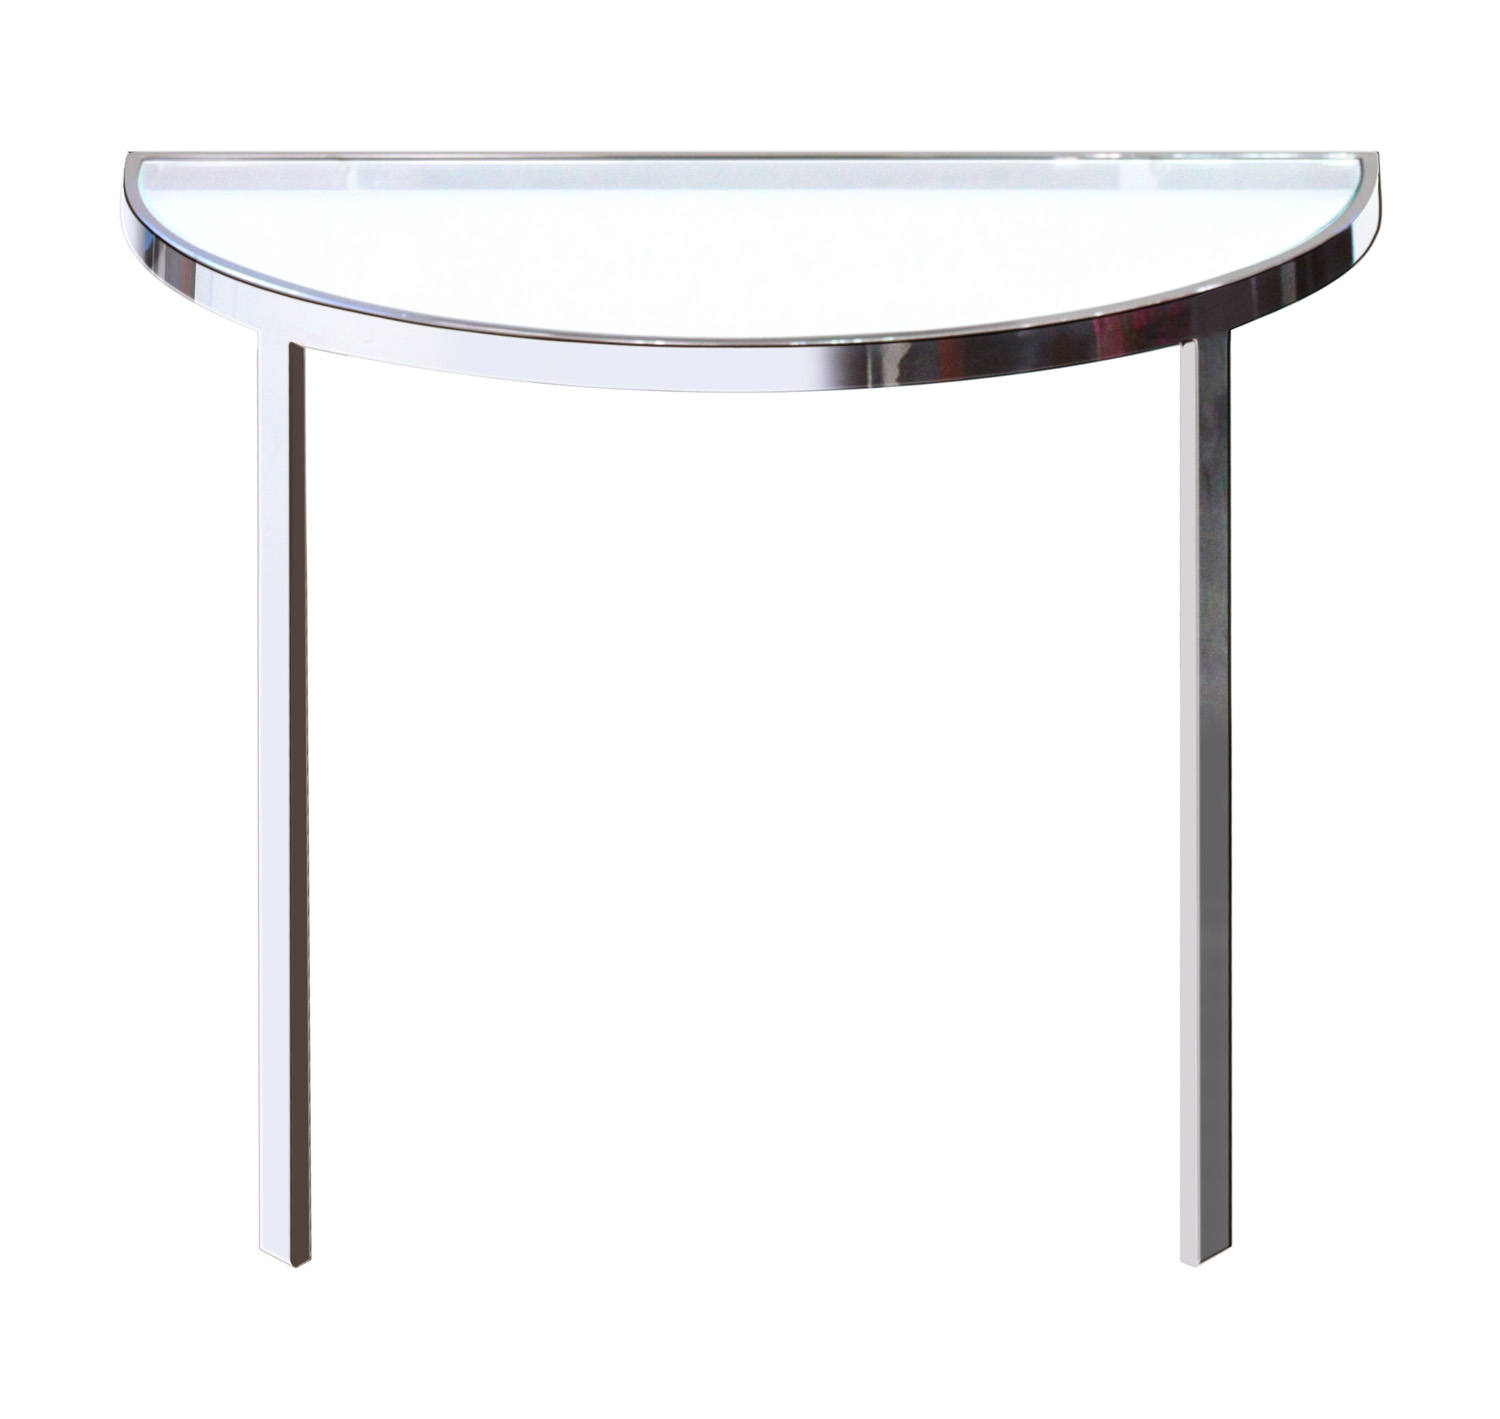 Brueton 45 polished steel console+mirror console70 console hires.jpg